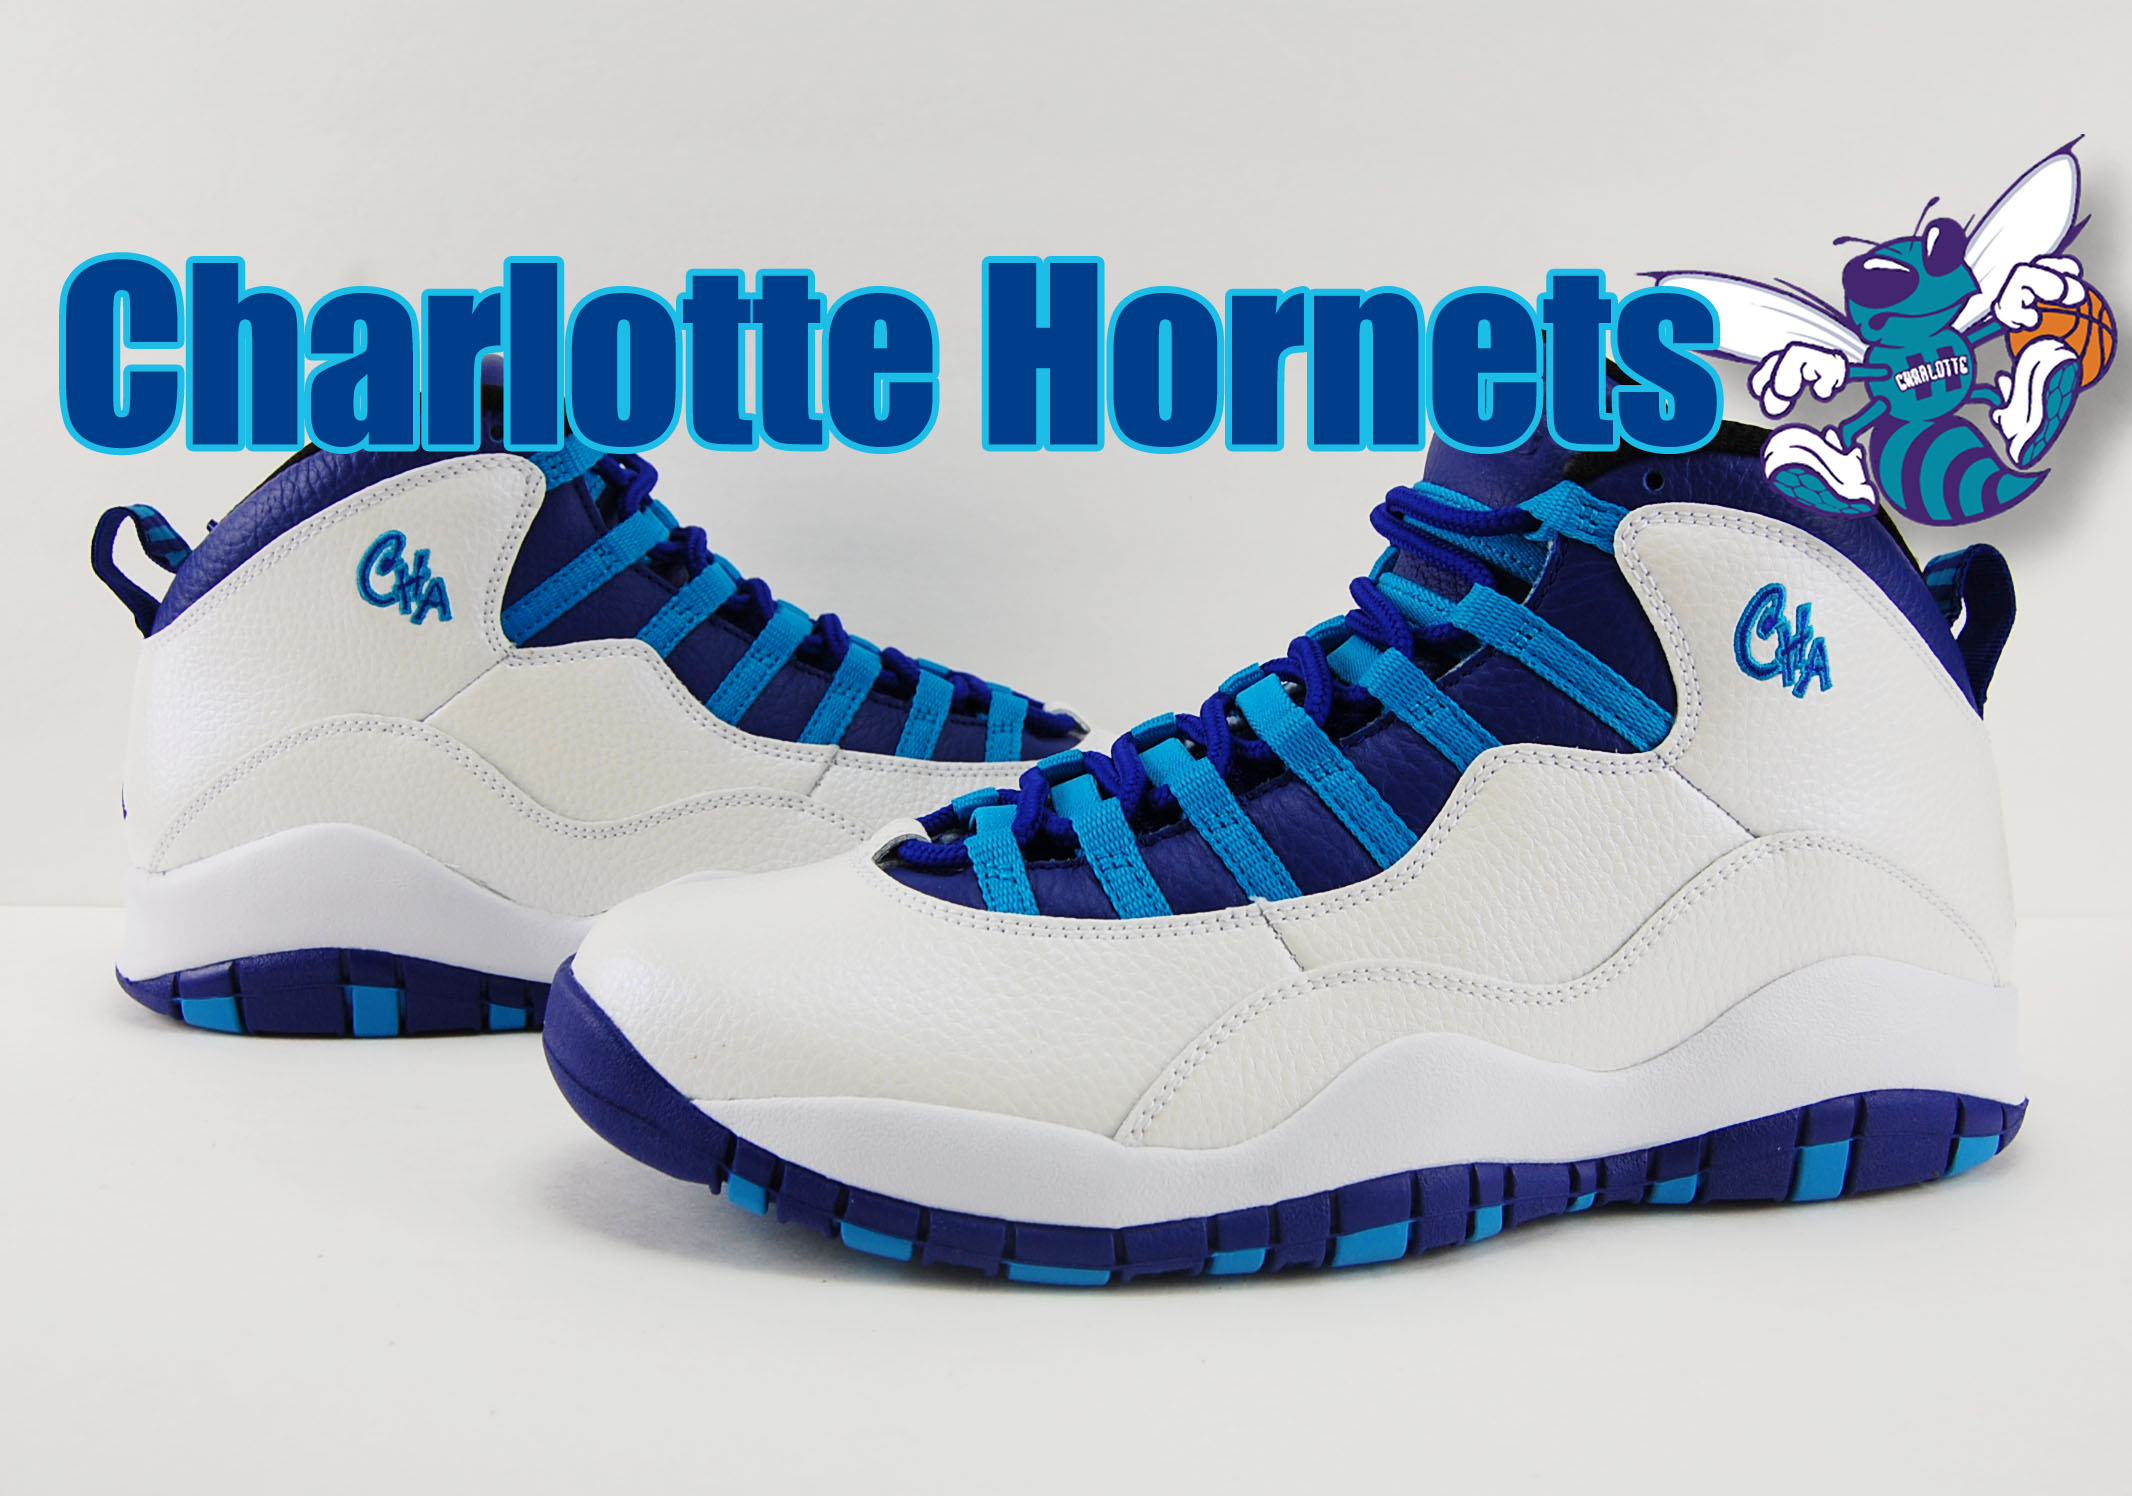 Air Jordan 10 Charlotte Hornets Review